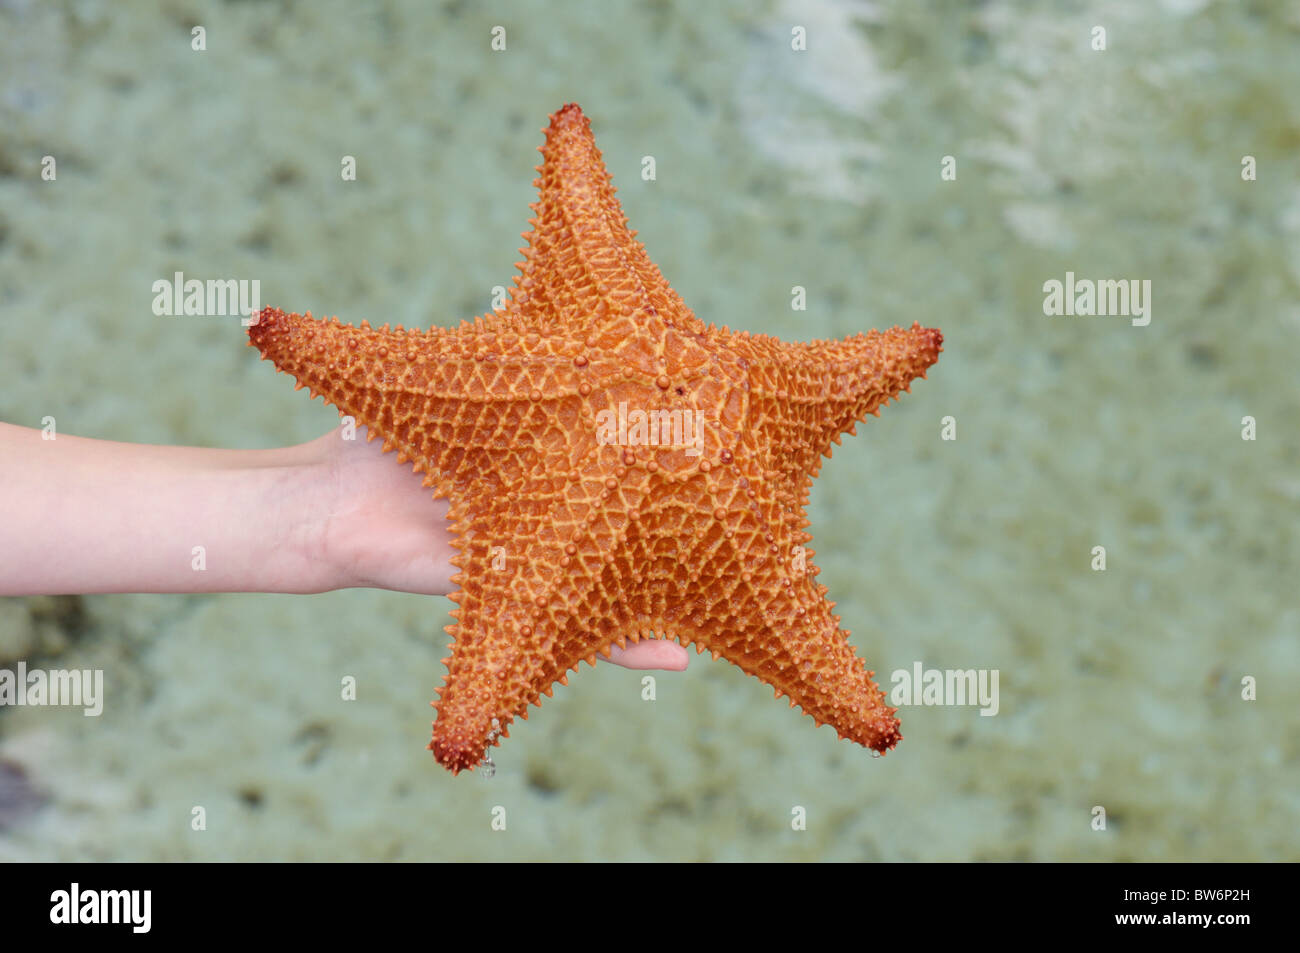 Sea star (red cushion star, Oreaster reticulatis) in a child's hand, Paradise island, The Bahamas - Stock Image